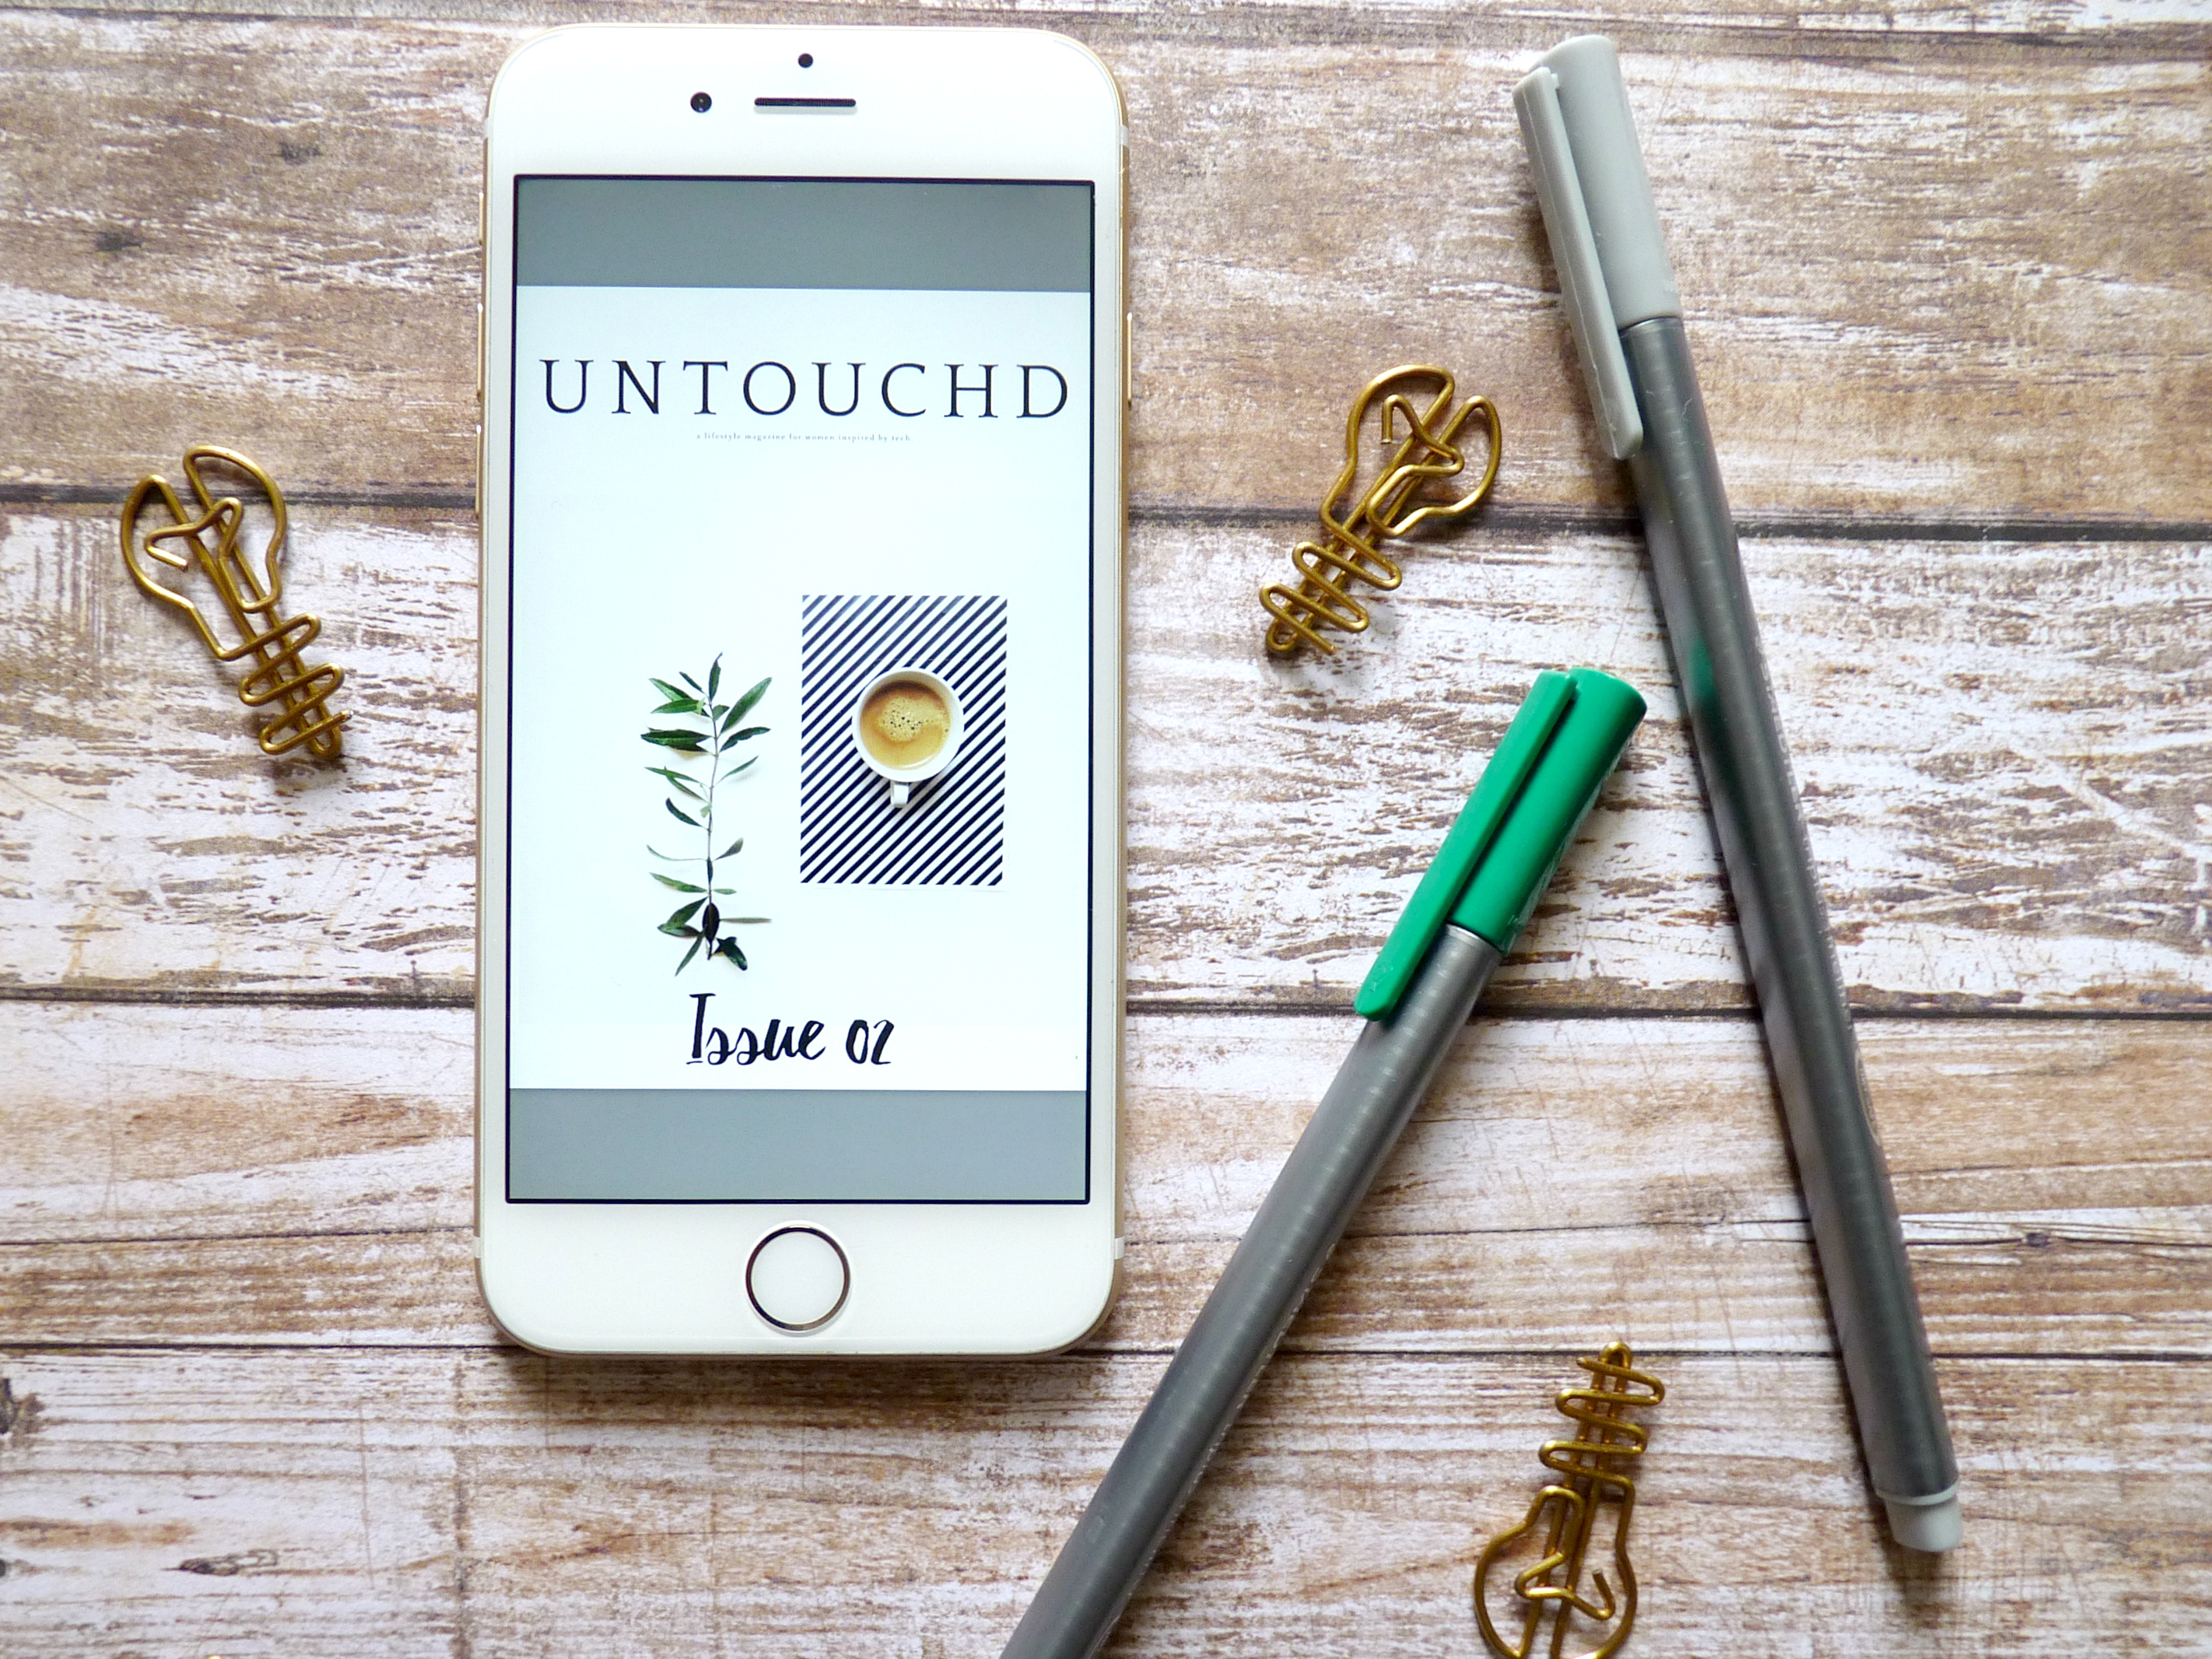 Untouchd magazine article perfectionism and learning to code